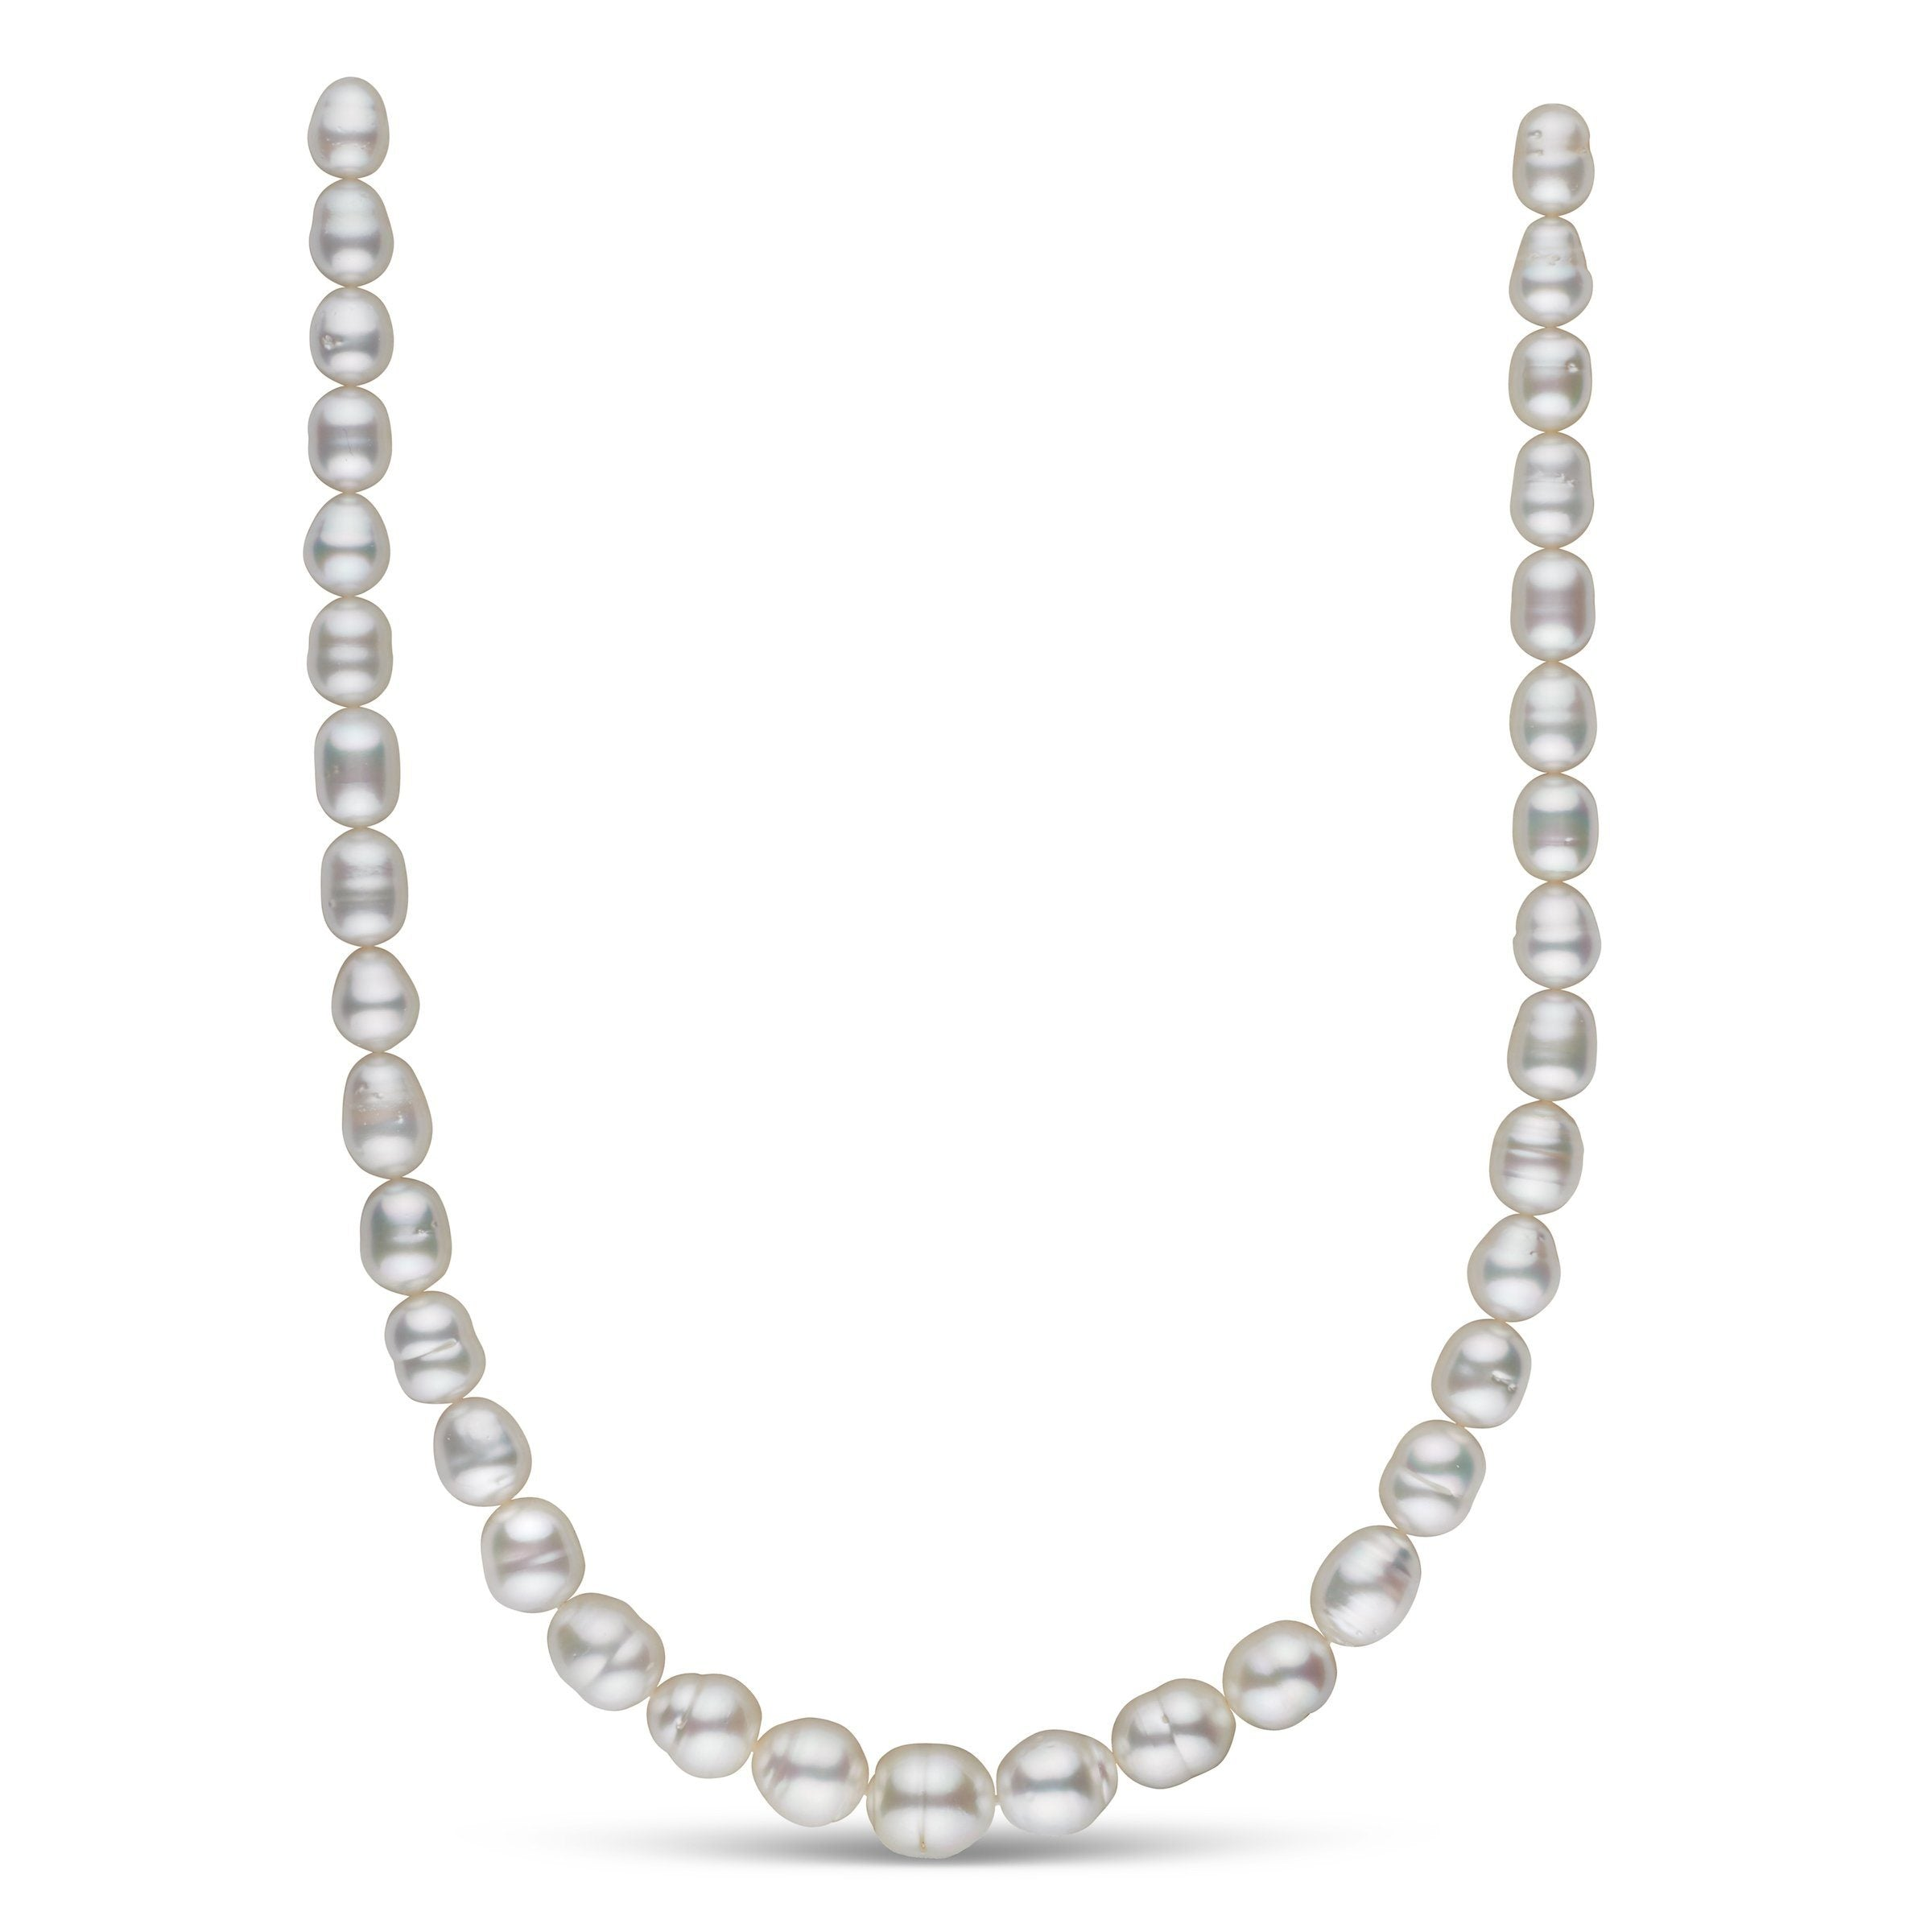 8.3-11.8 mm AA+ White South Sea Baroque Necklace